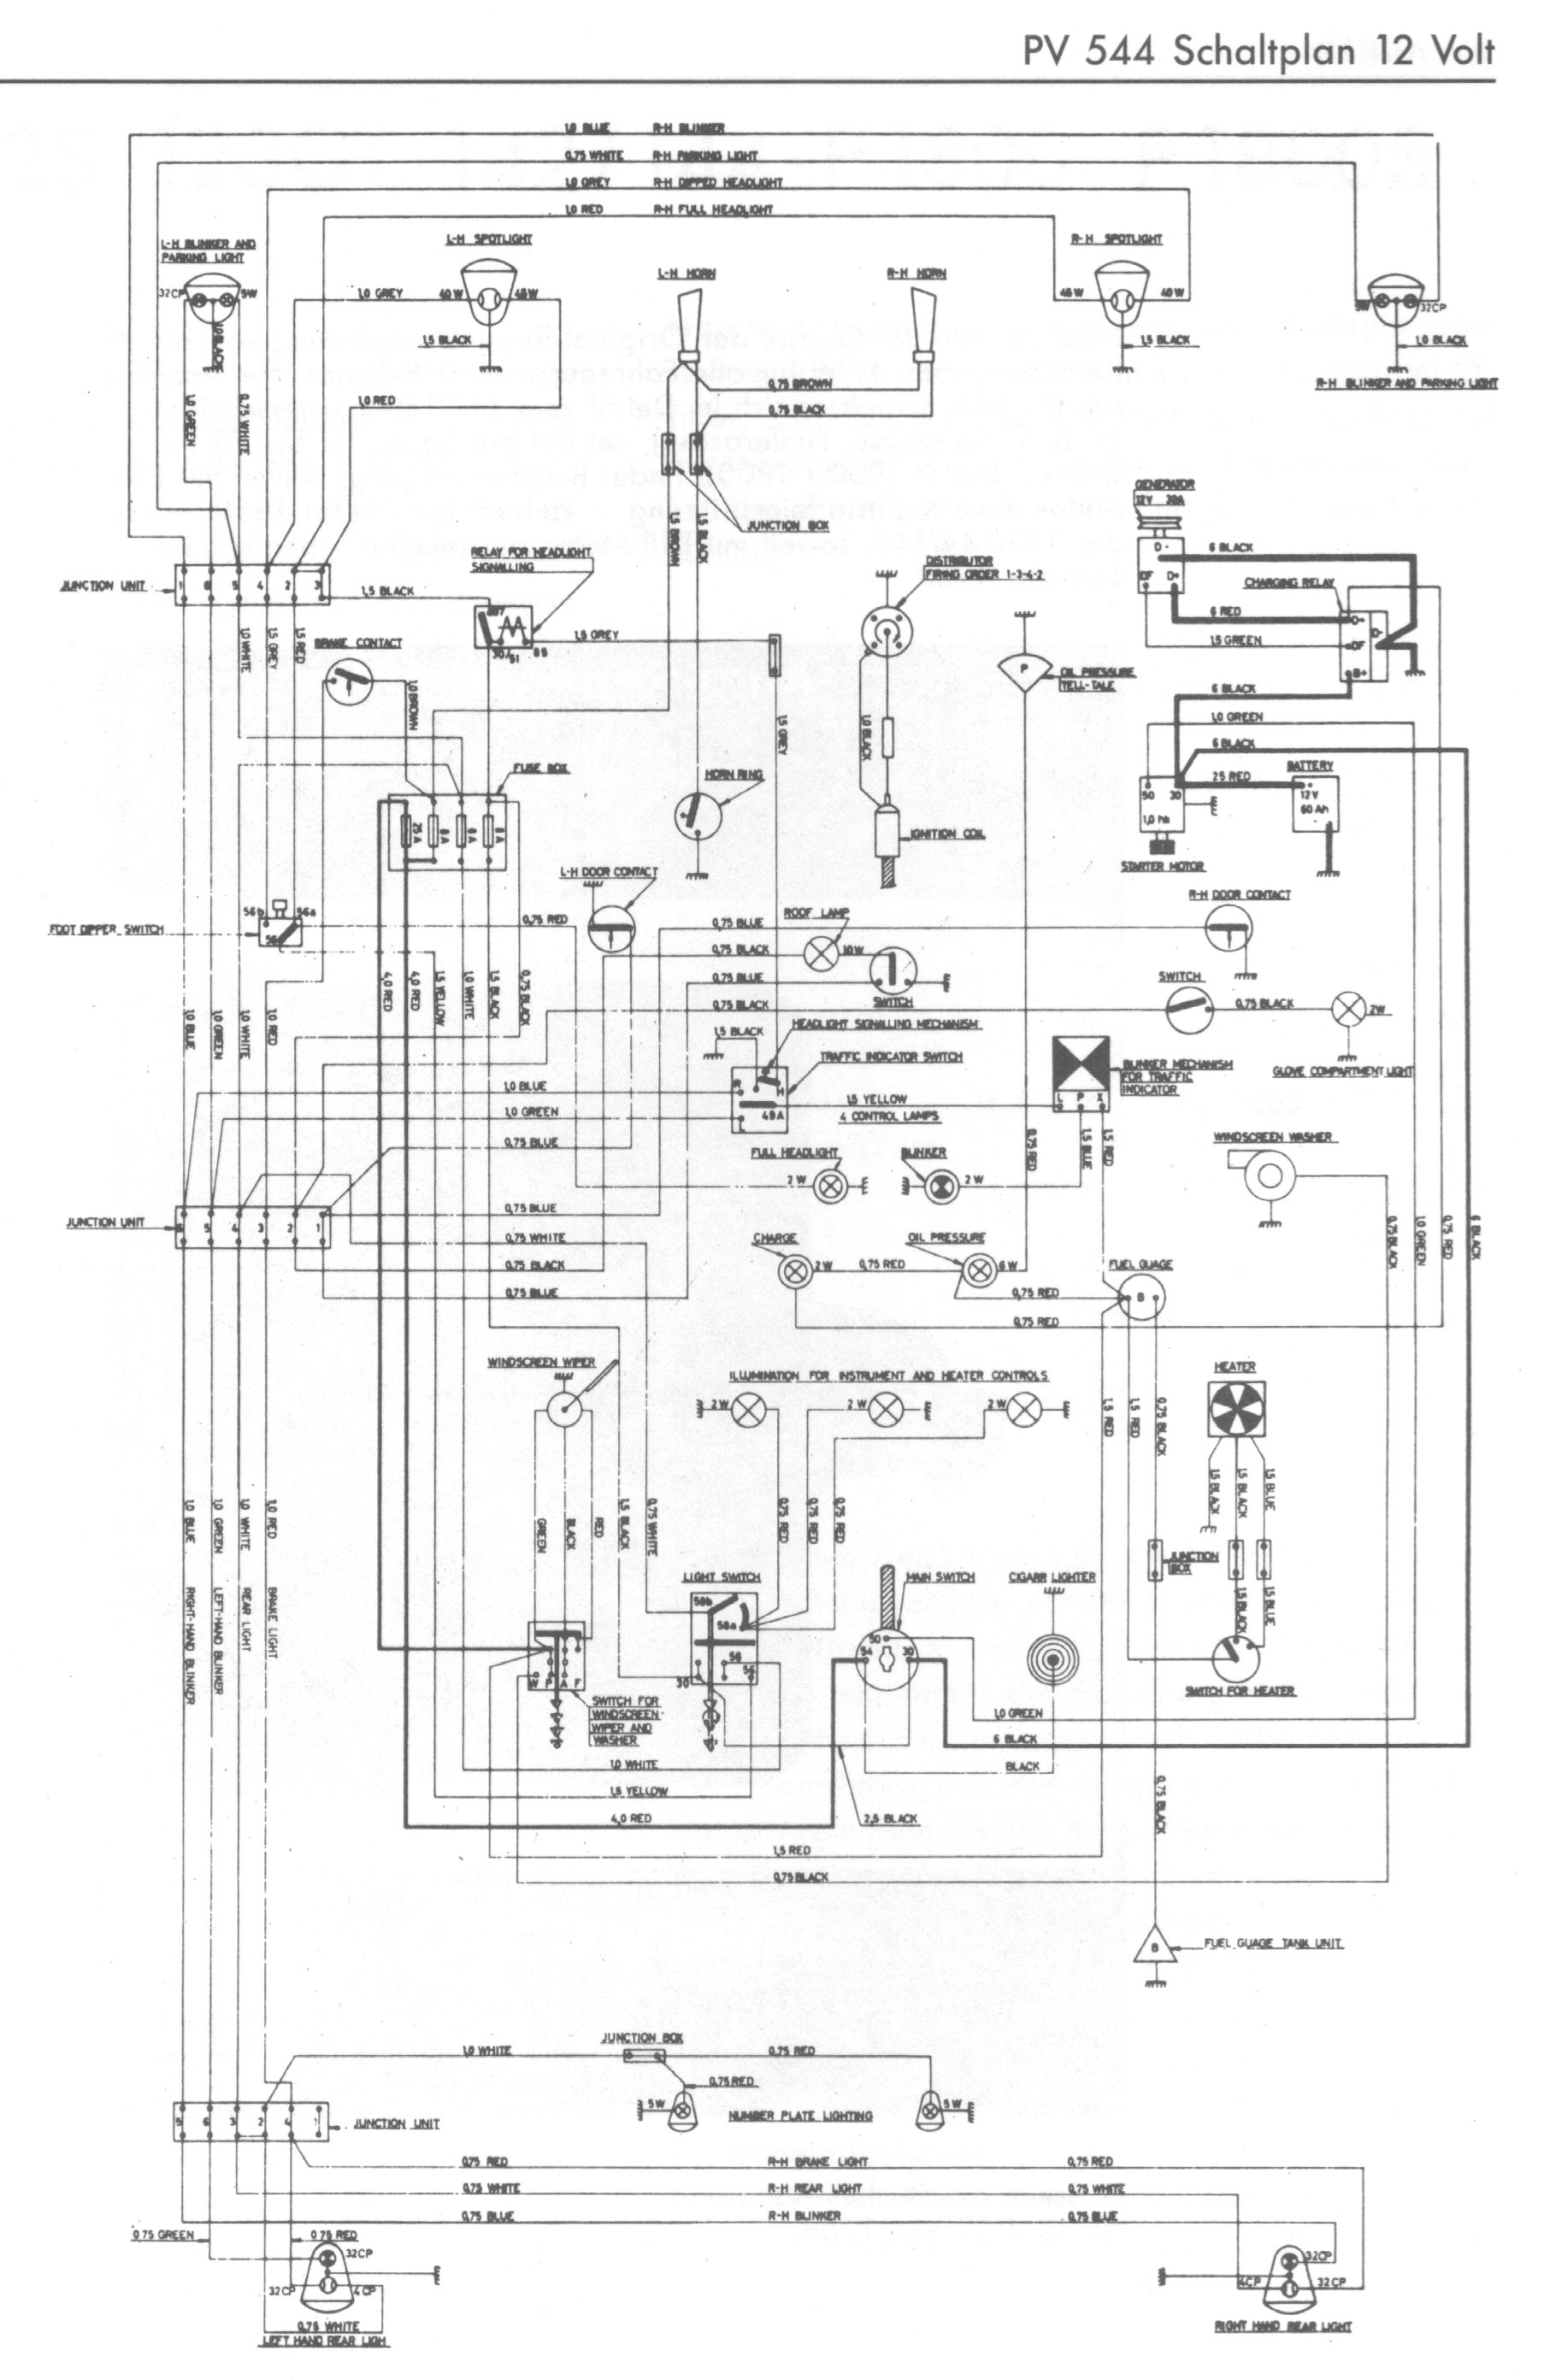 1983 Volvo 240 Wiring Diagram Complete Diagrams 1989 740 Get Free Image About 1998